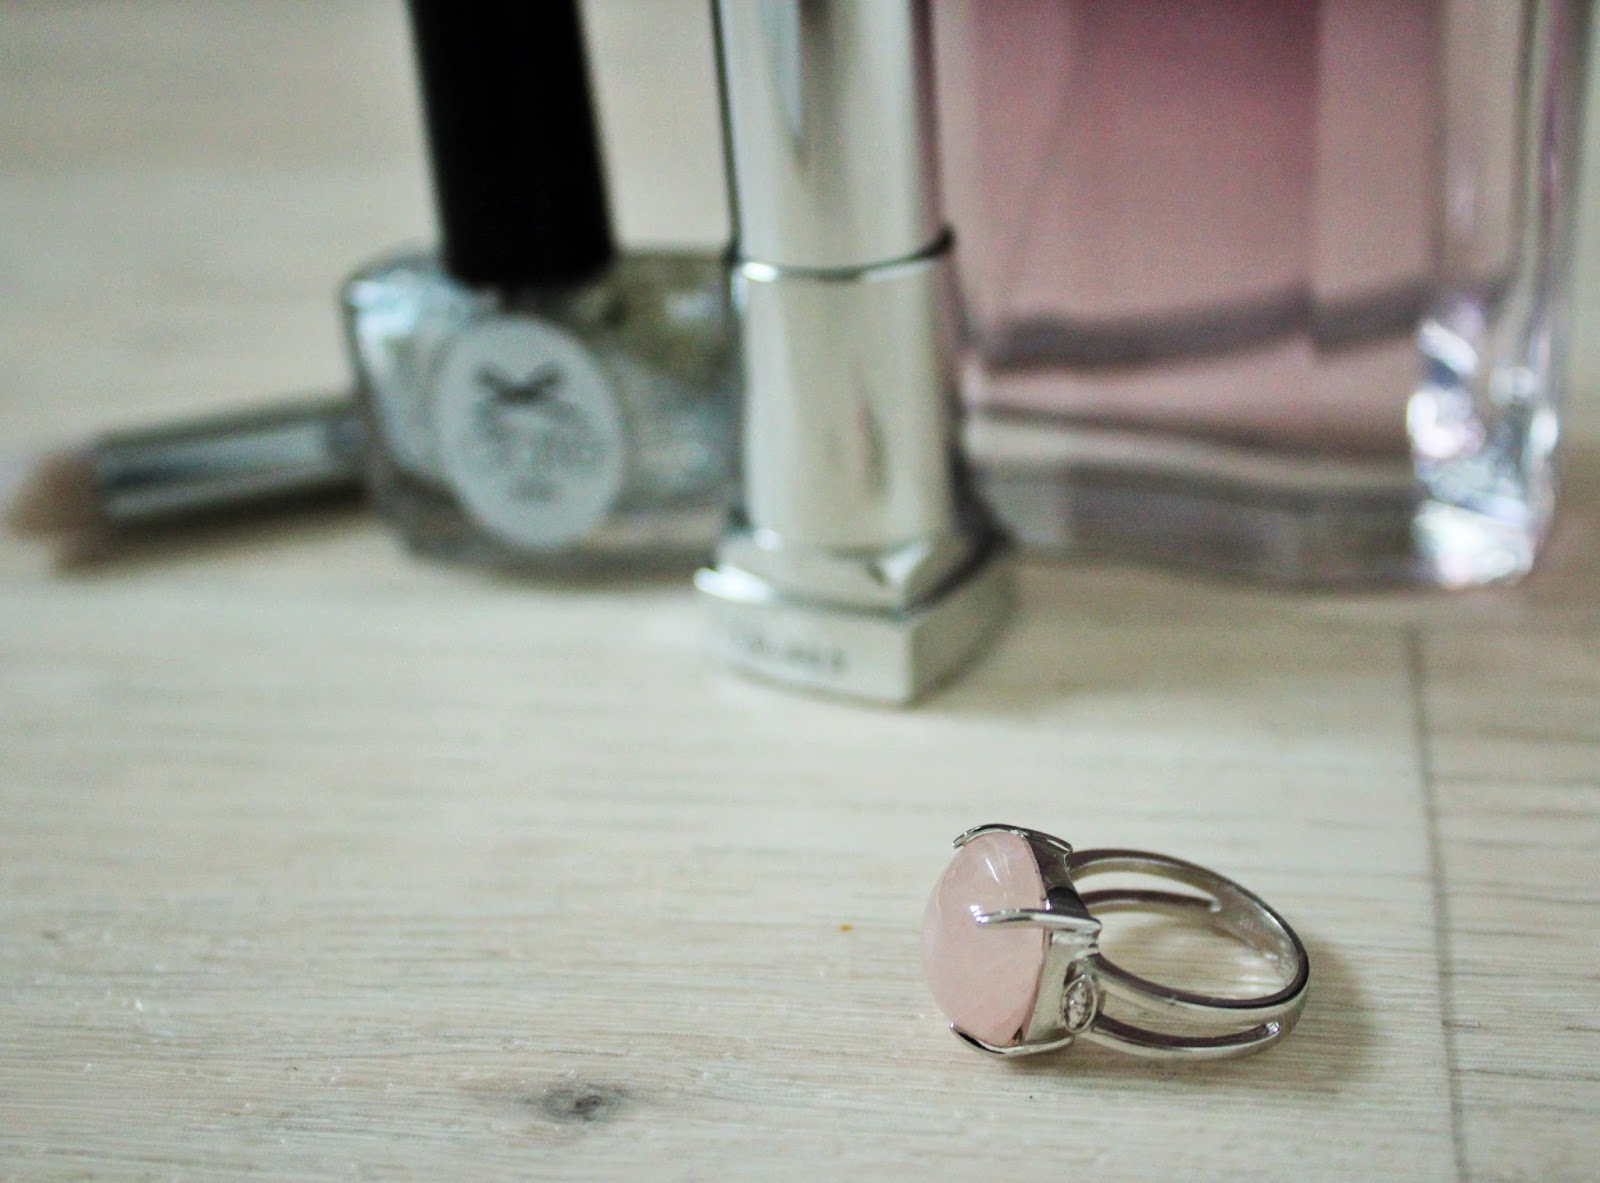 Morganite and Sterling Silver Cocktail Ring from Gemporia - Perfect for Christmas Parties